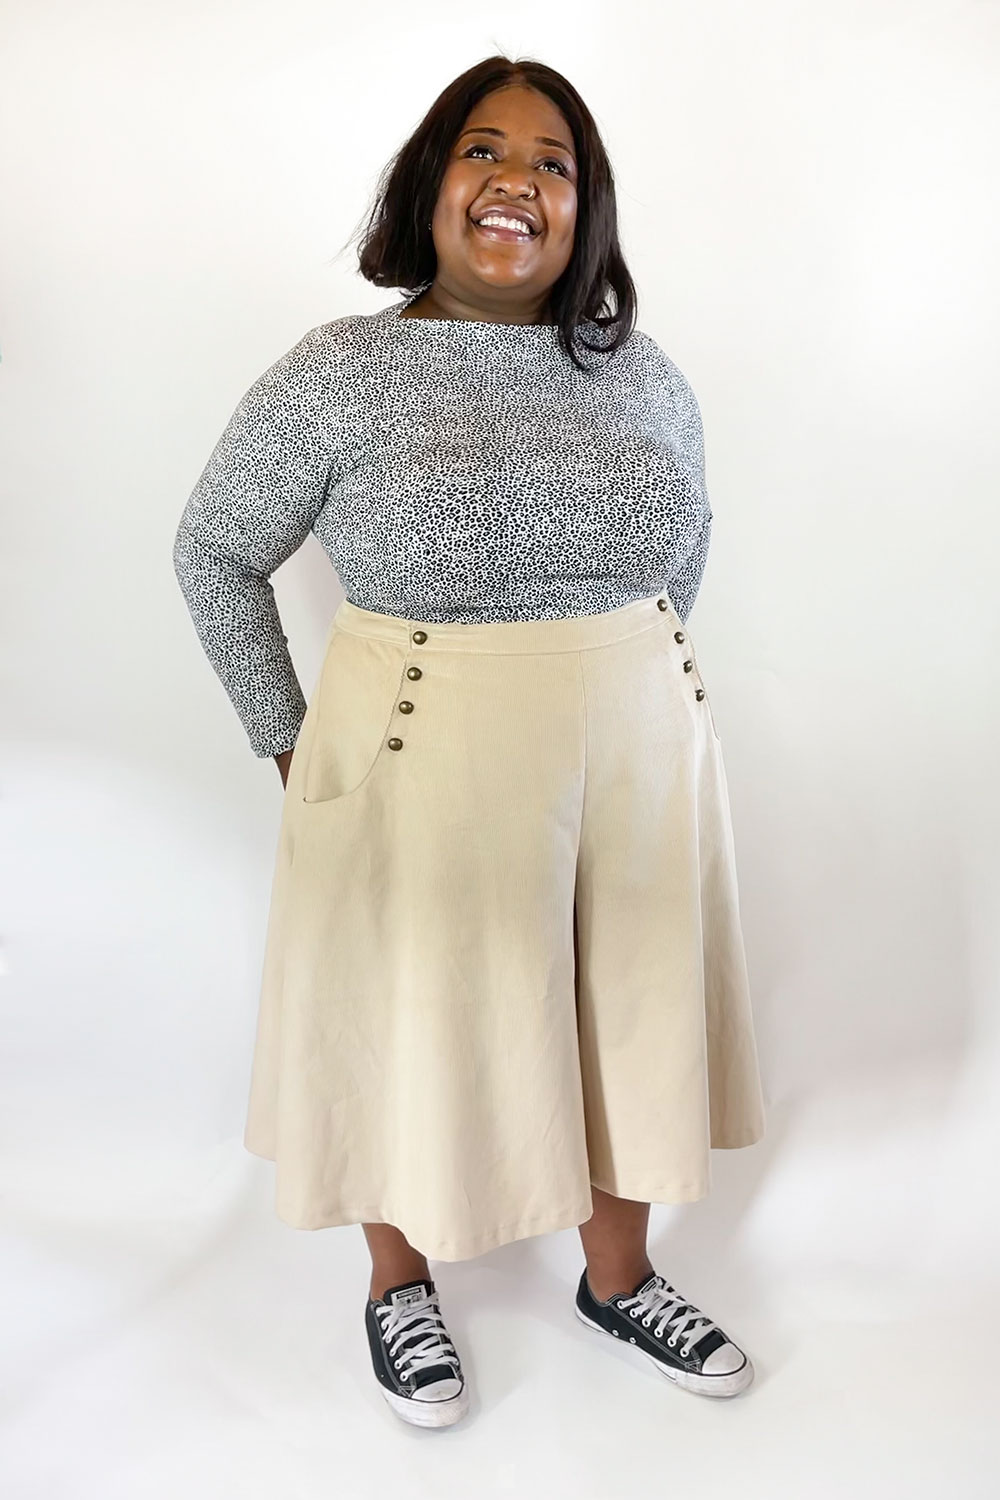 Image of black woman in black and white spotted knit top and tan colored sailor-style culottes.